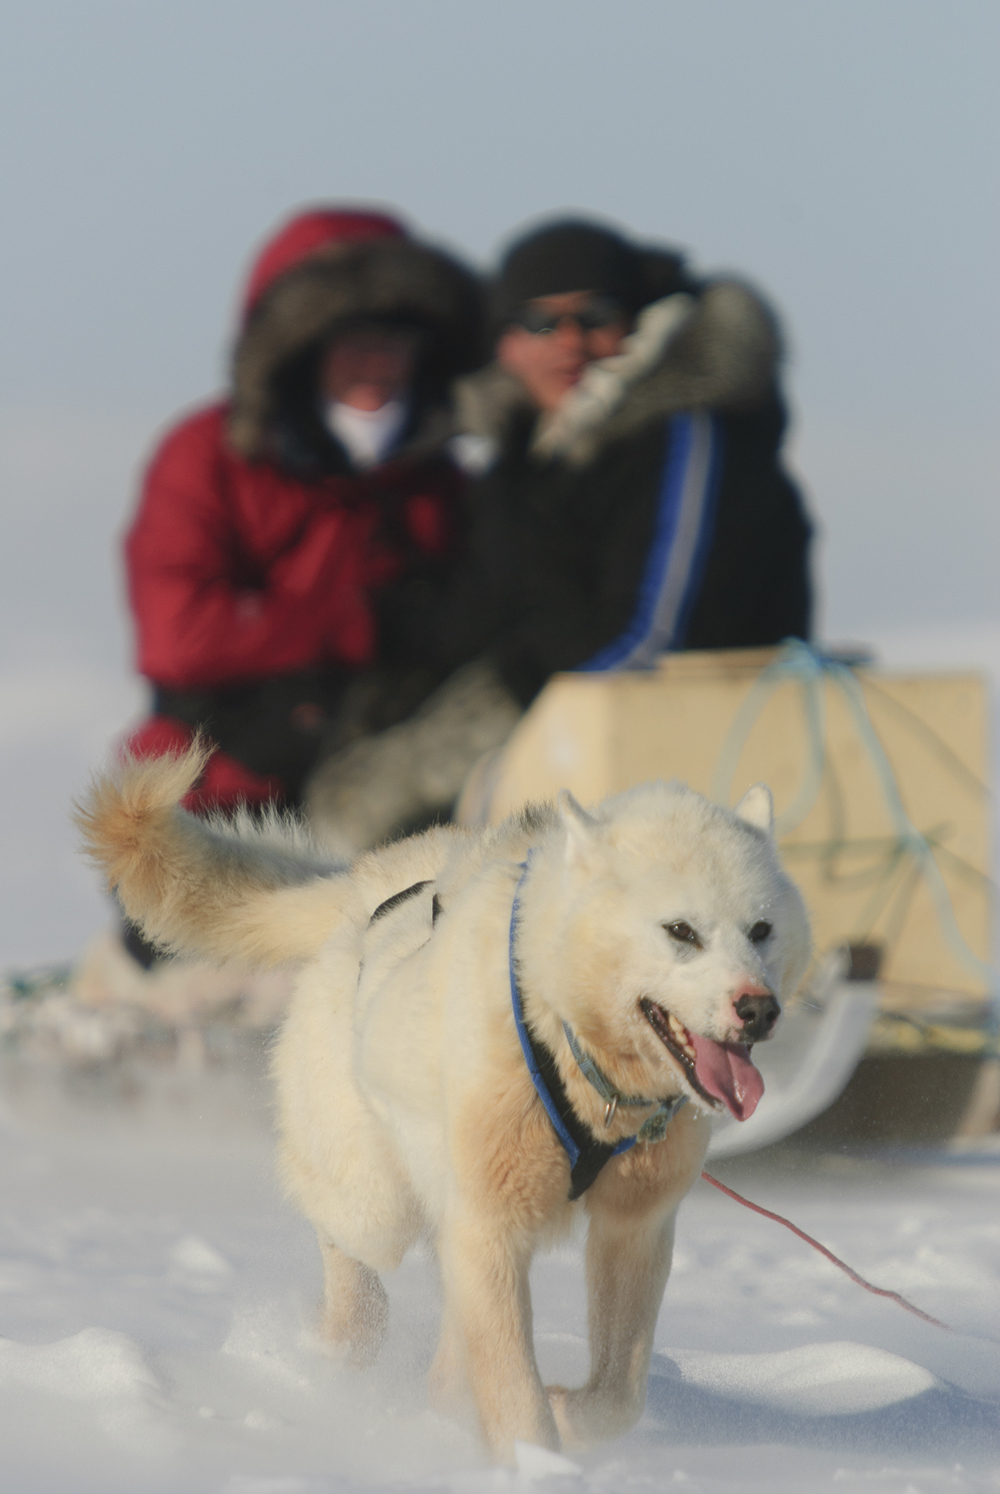 Sled Dog Pulling Hard - Hudson Bay Coast, Nunavik, Canadian Arctic